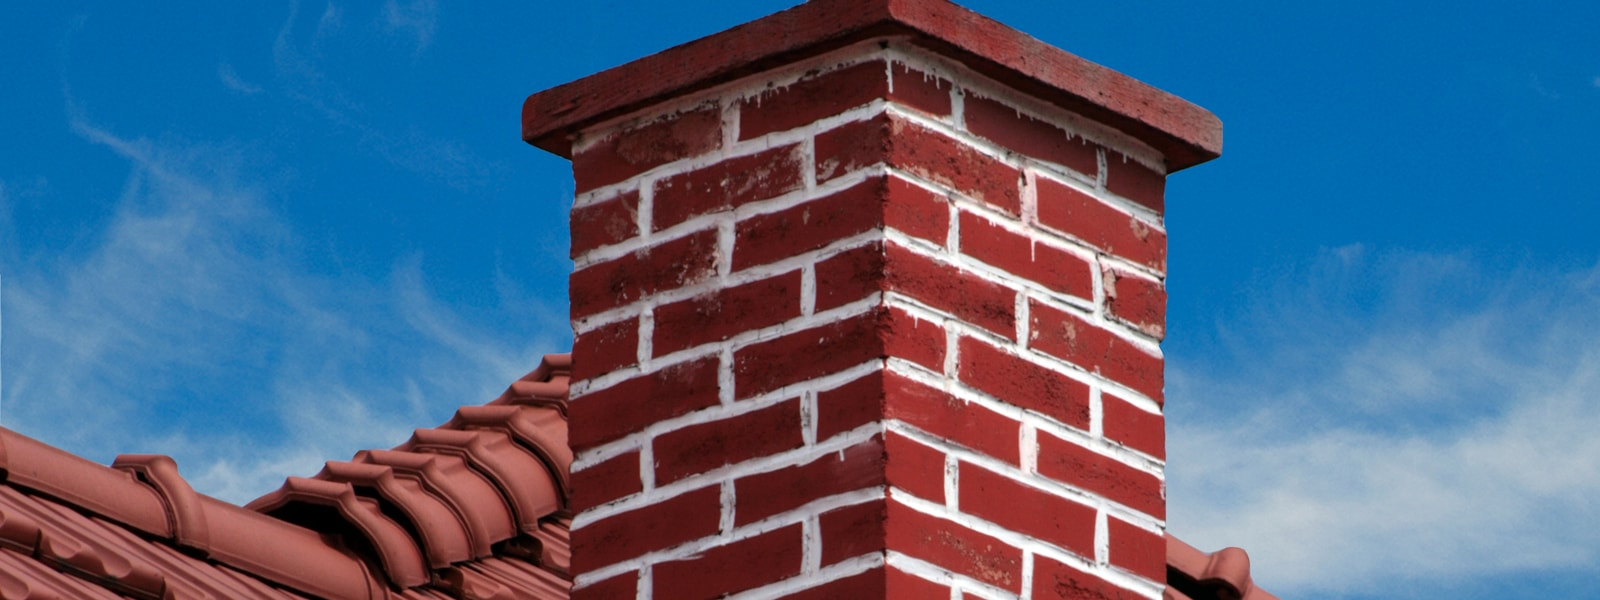 Chimney Installations